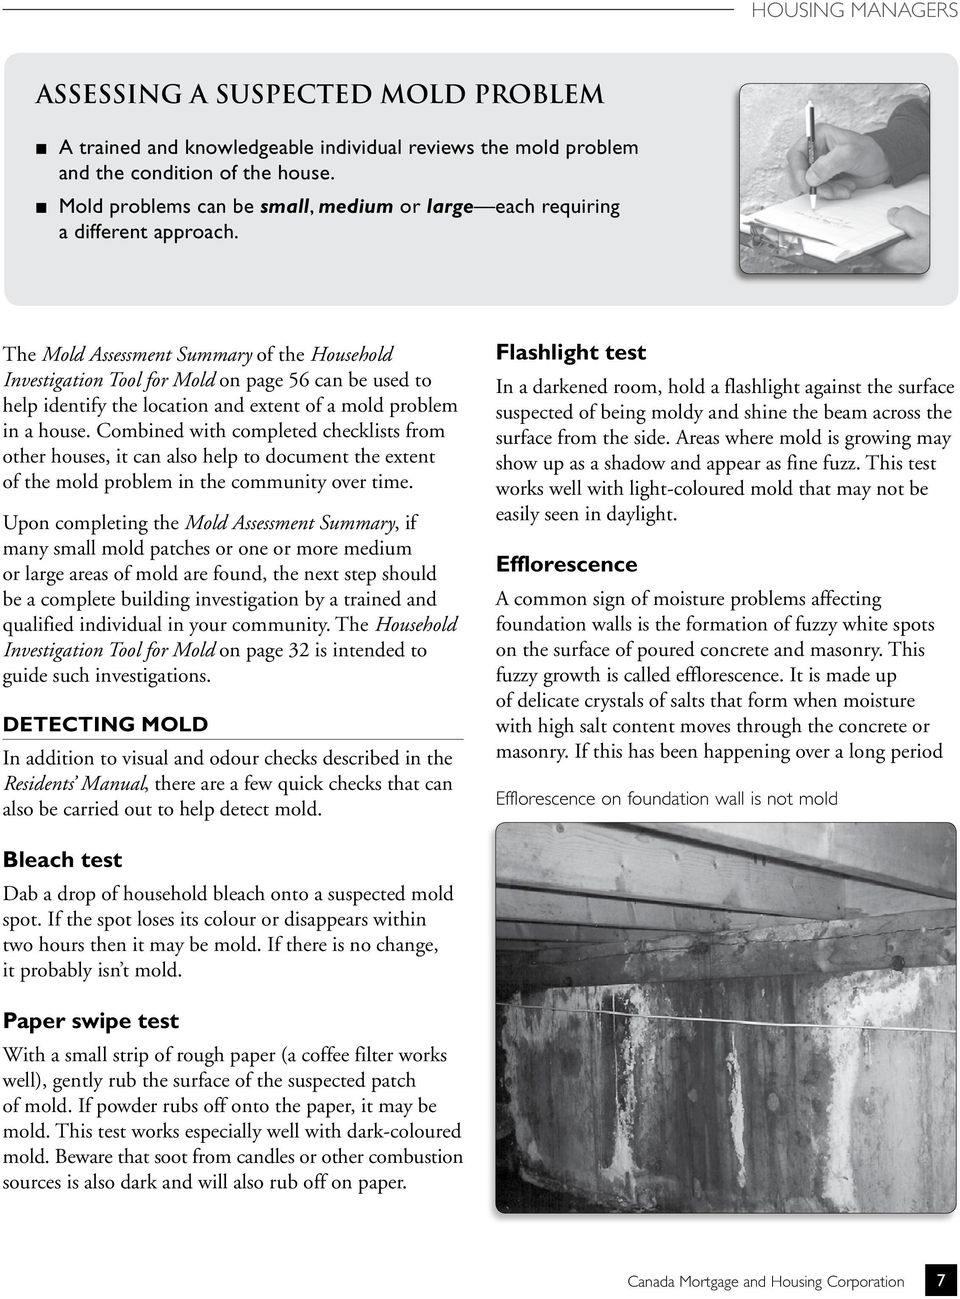 The Mold Assessment Summary of the Household Investigation Tool for Mold on page 56 can be used to help identify the location and extent of a mold problem in a house.